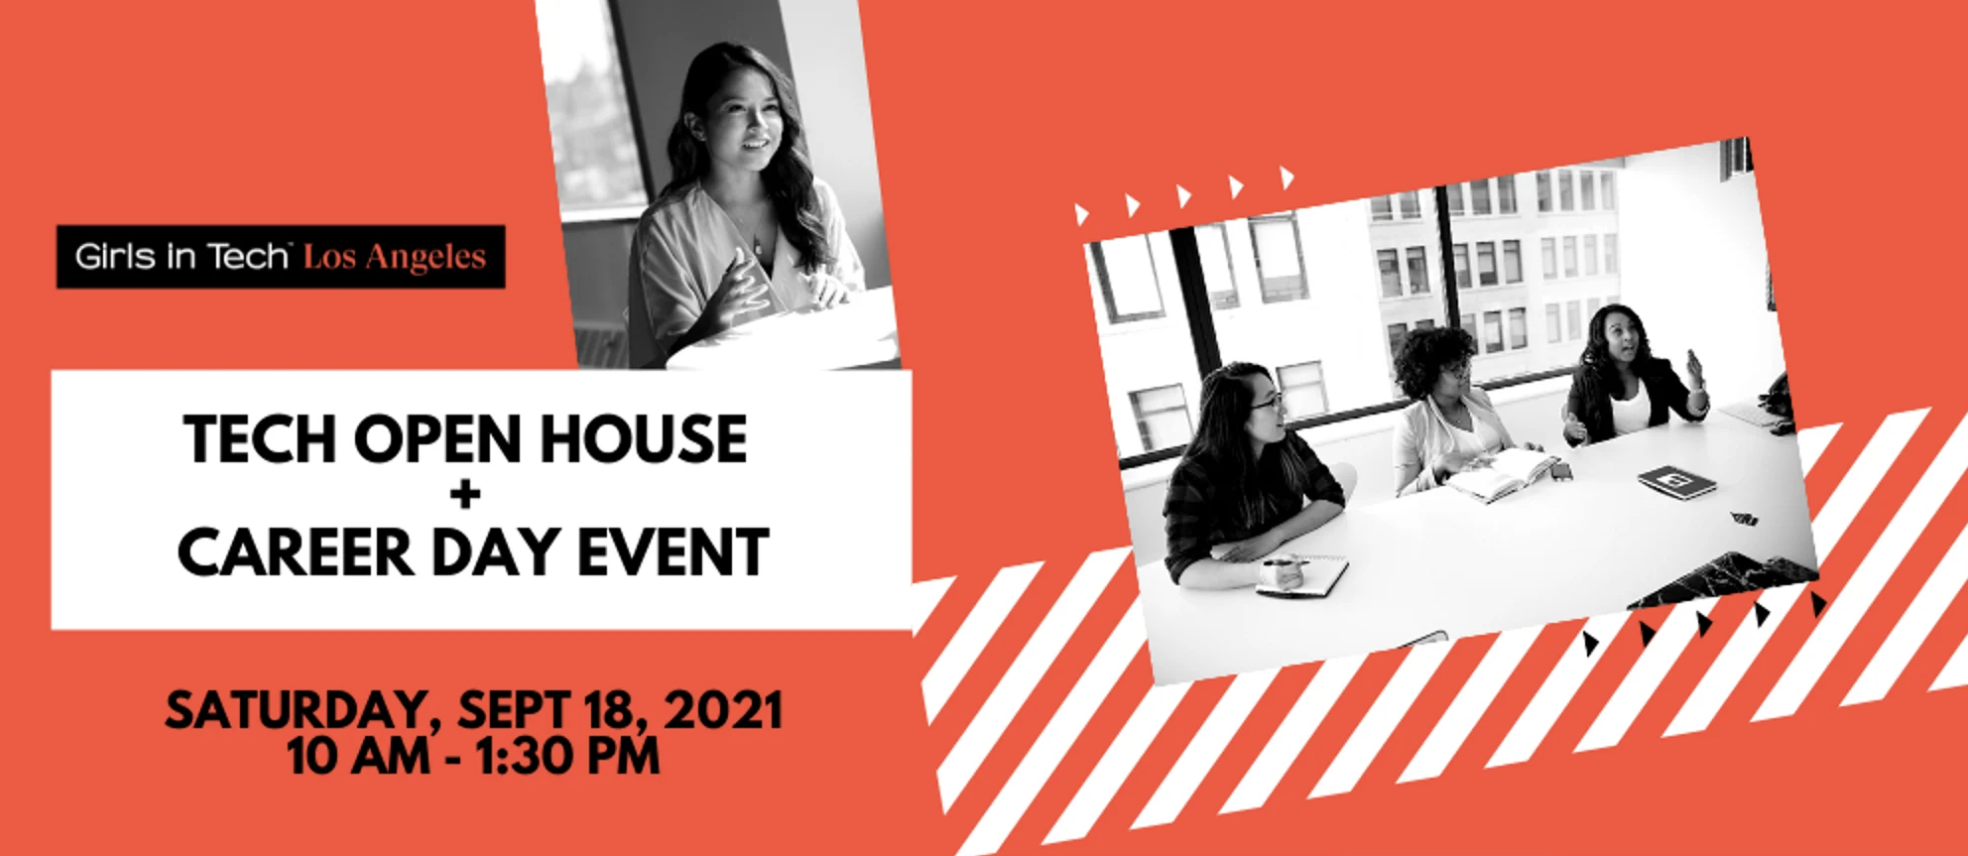 Girls in Tech: Los Angeles - Tech Open House + Career Day Event